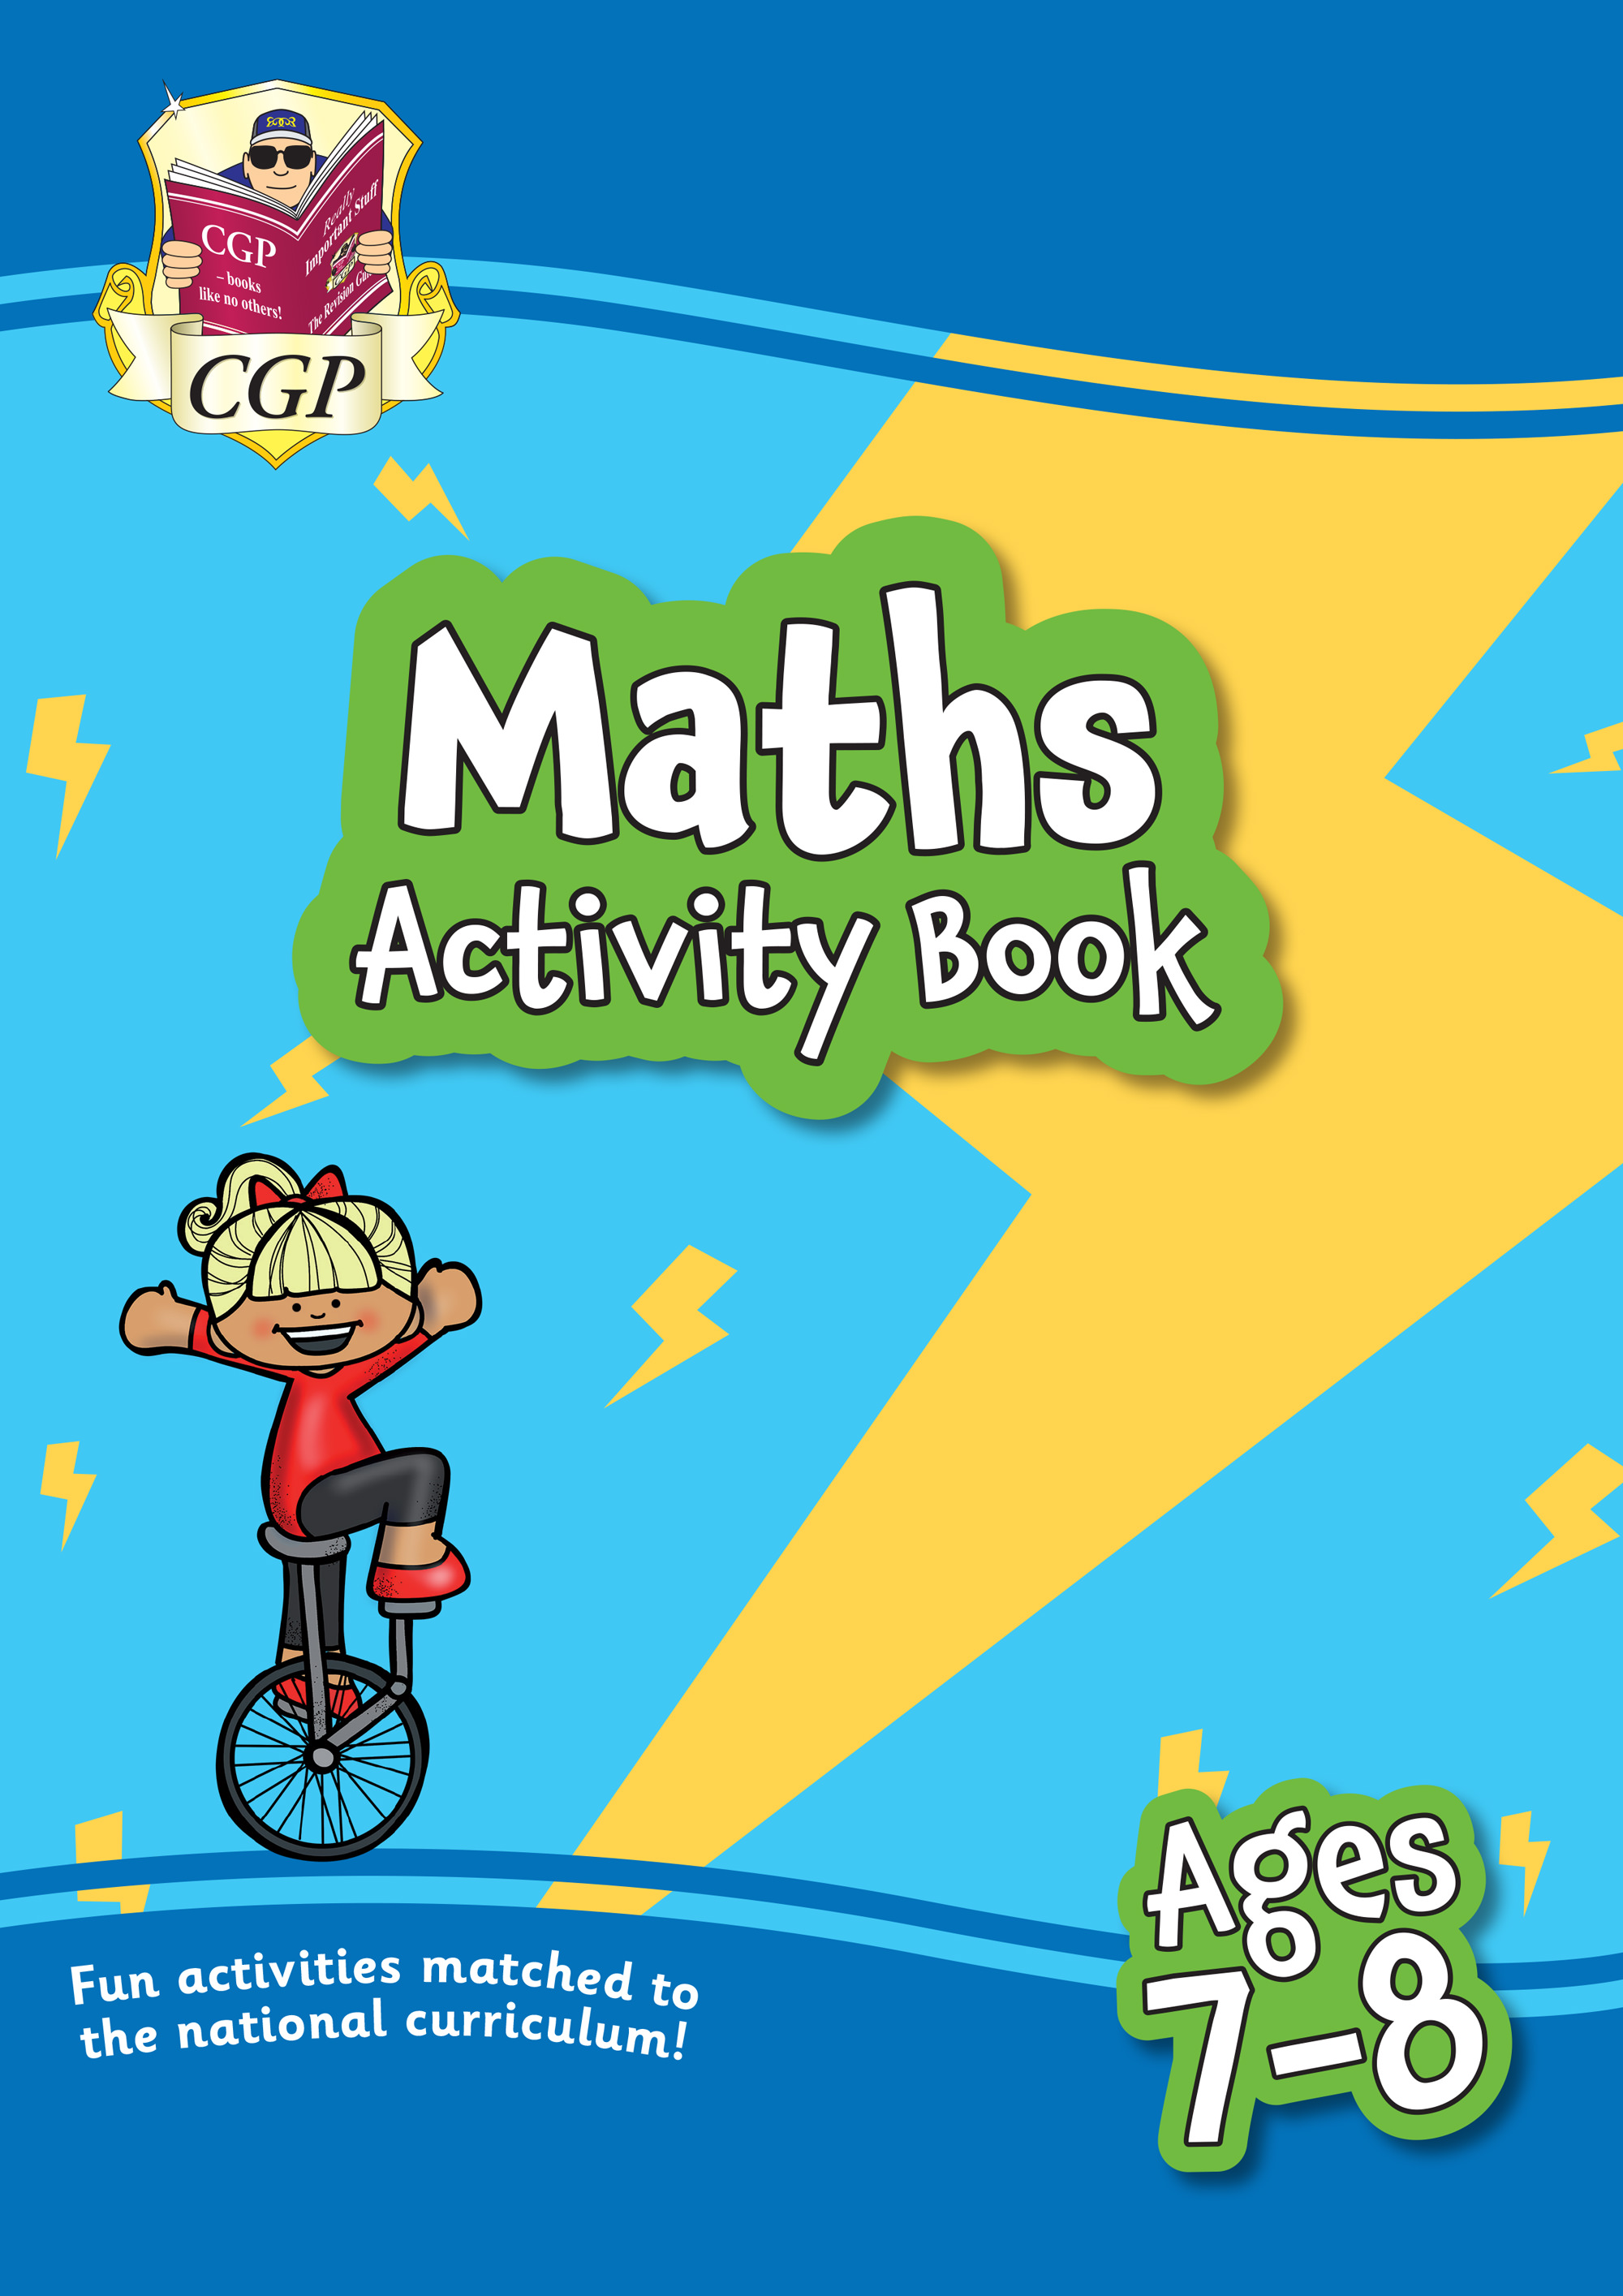 MPF3Q21 - New Maths Home Learning Activity Book for Ages 7-8